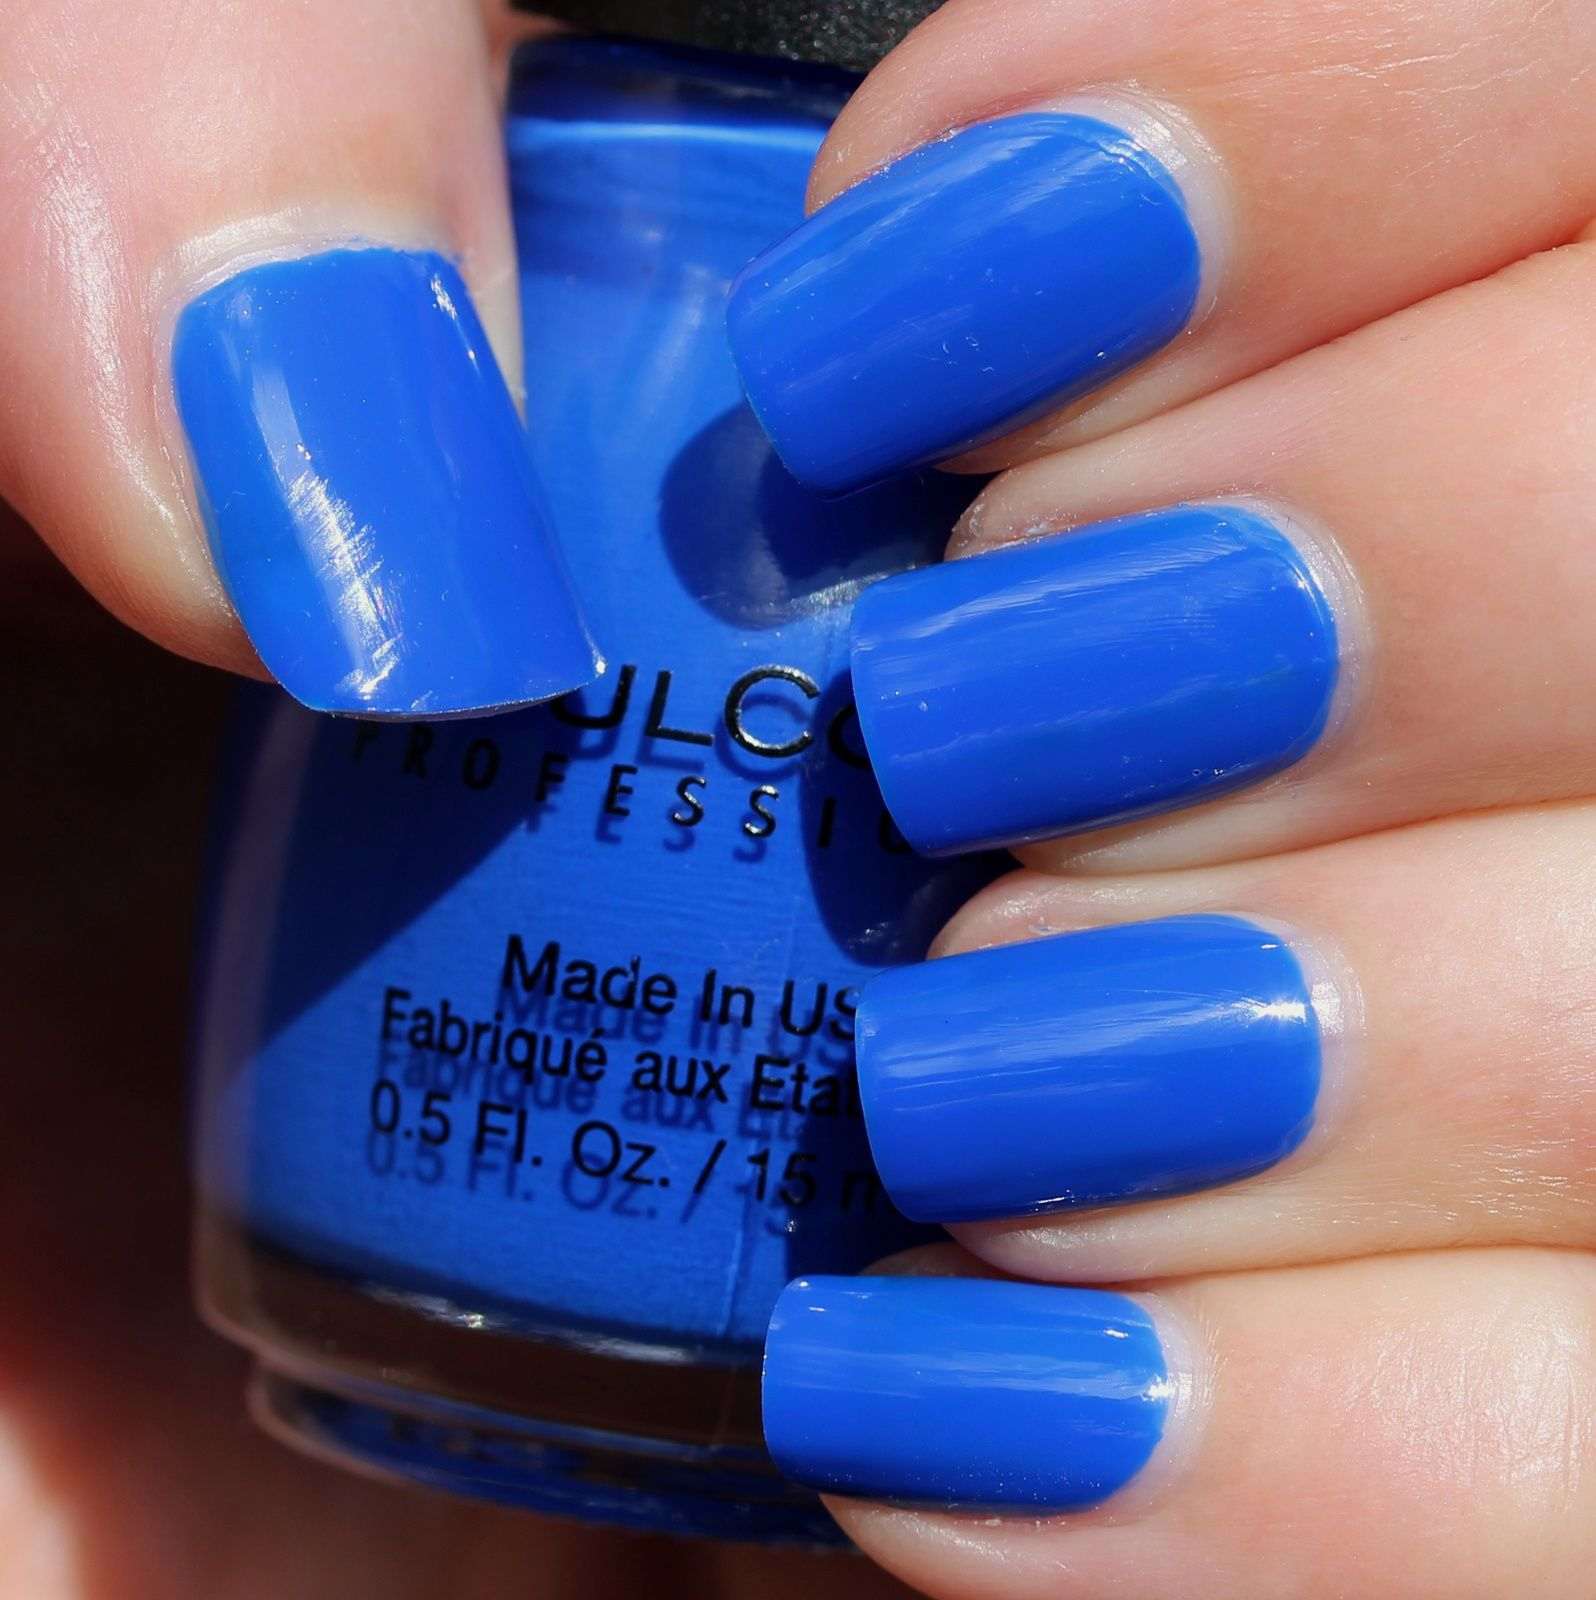 Sally Hansen Complete Care 4-in-1 Extra Moisturizing Nail Treatment / Sinful Colors Endless Blue / Sally Hansen Miracle Gel Top Coat